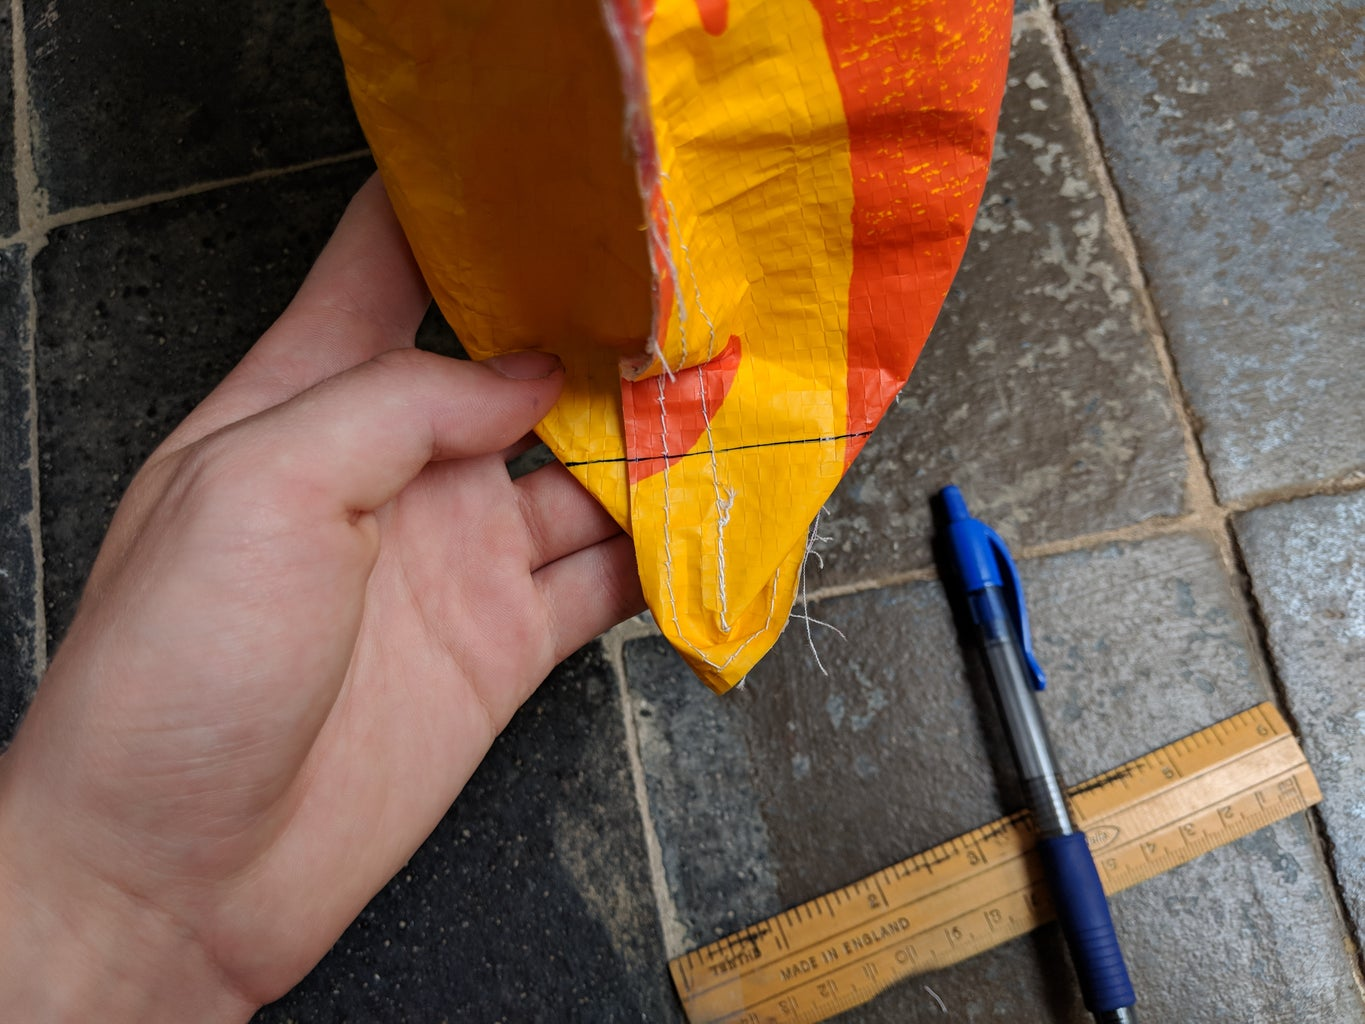 Sewing the Bag